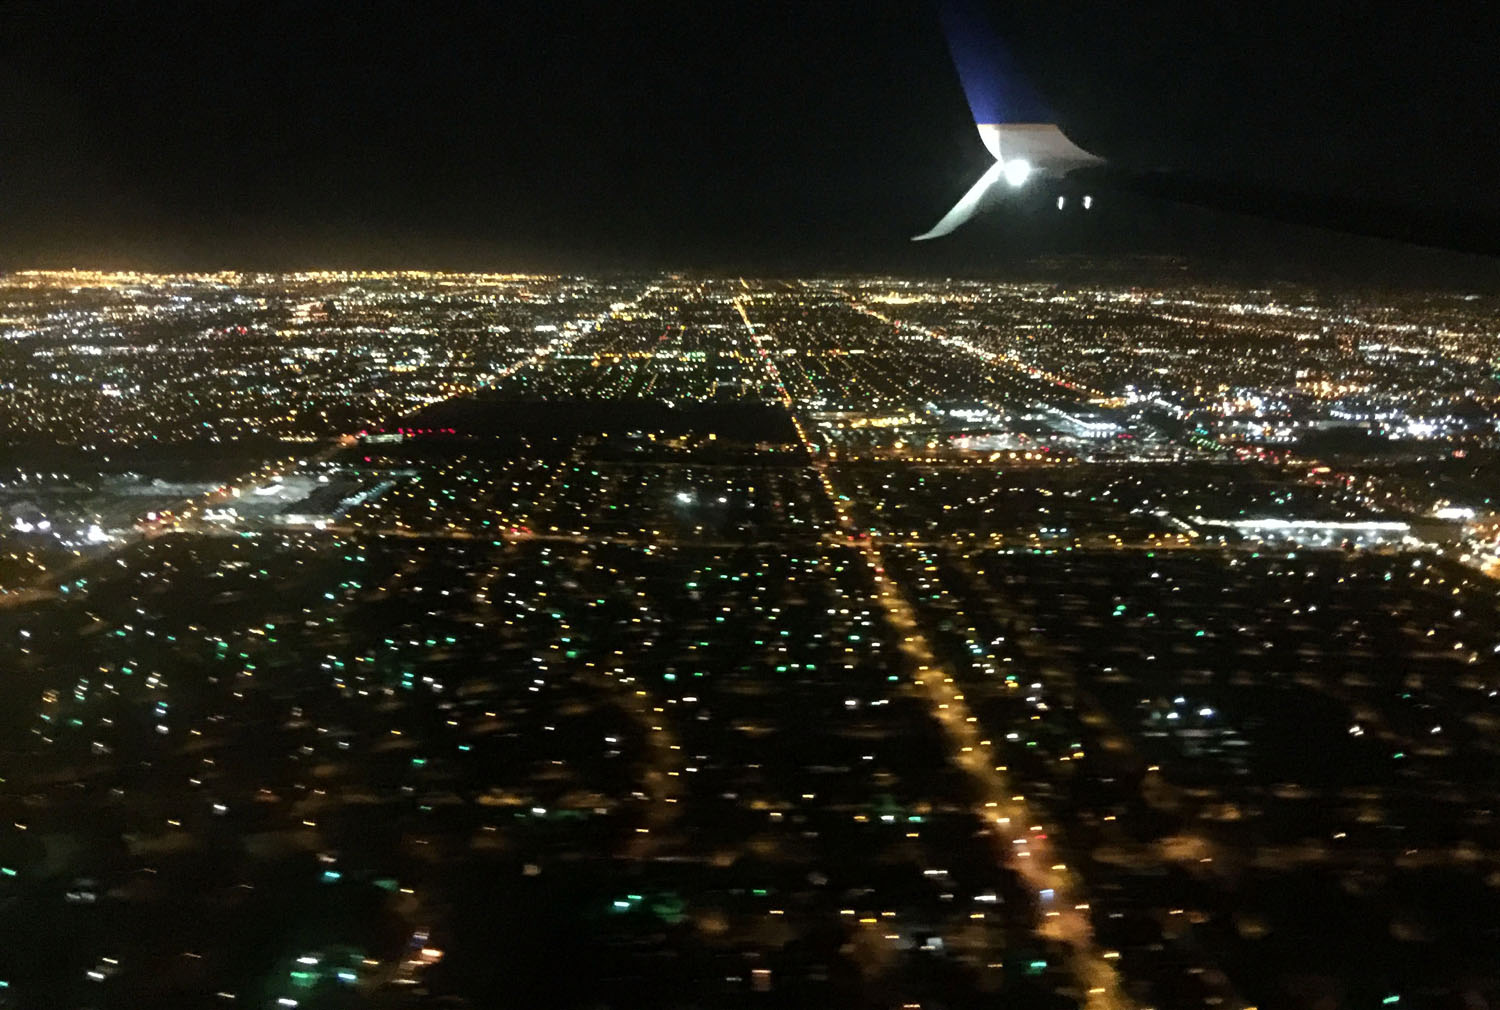 Las Vegas city lights via our airplane window.